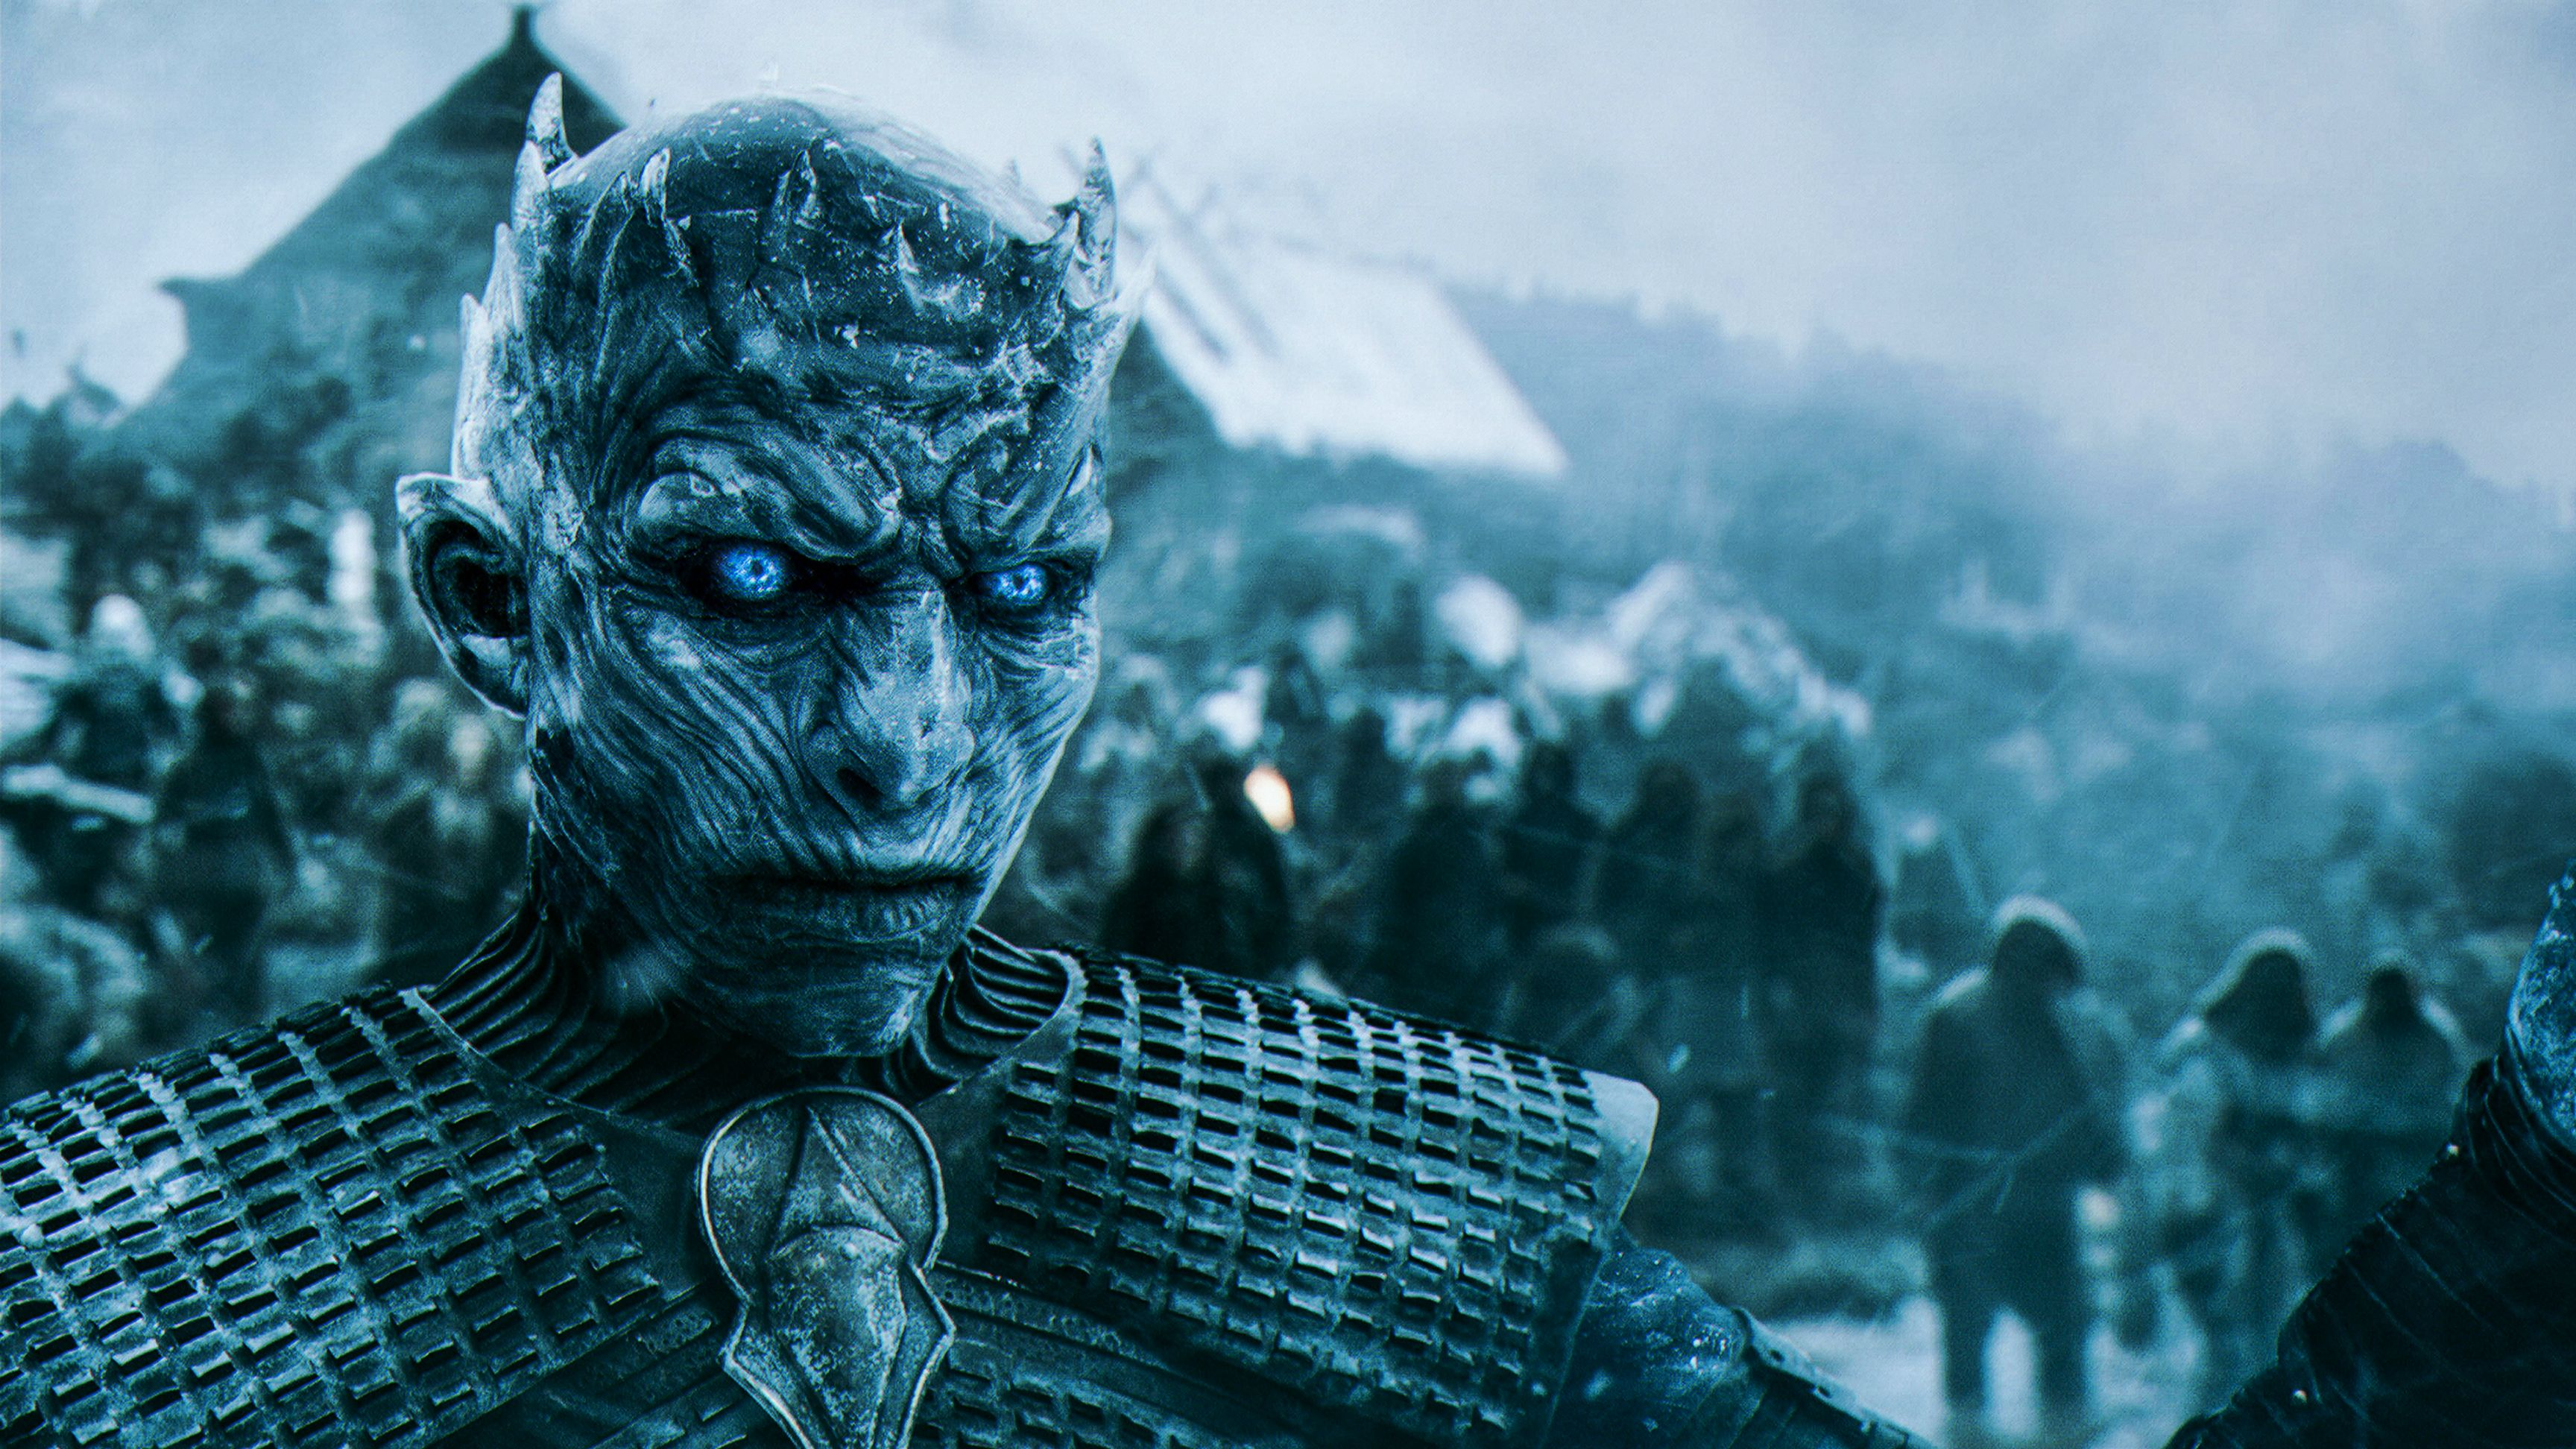 3181 Game Of Thrones HD Wallpapers Background Images   Wallpaper 3456x1944